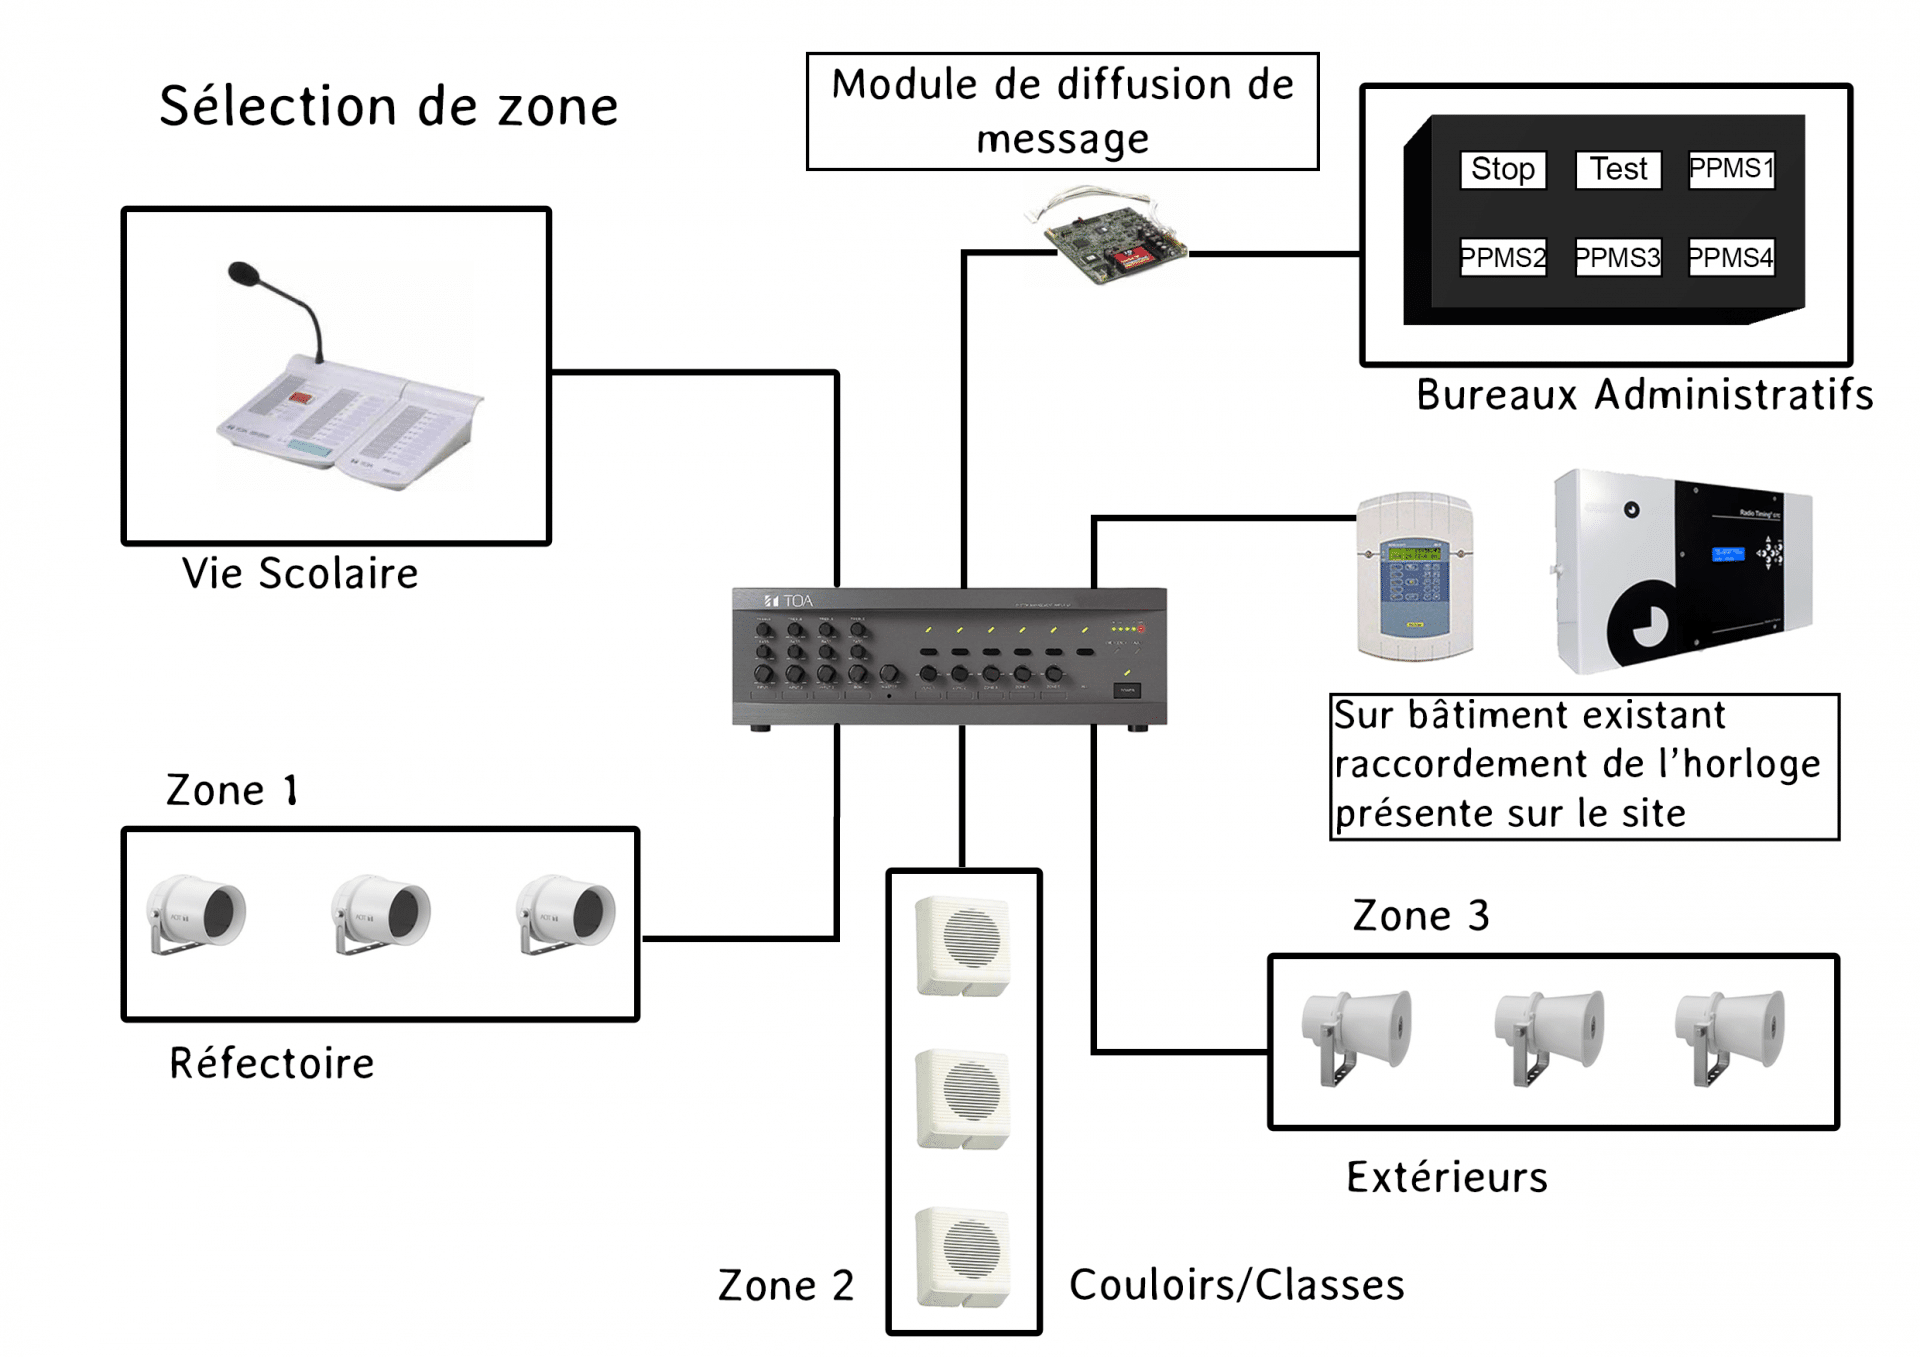 Séléction de zone2